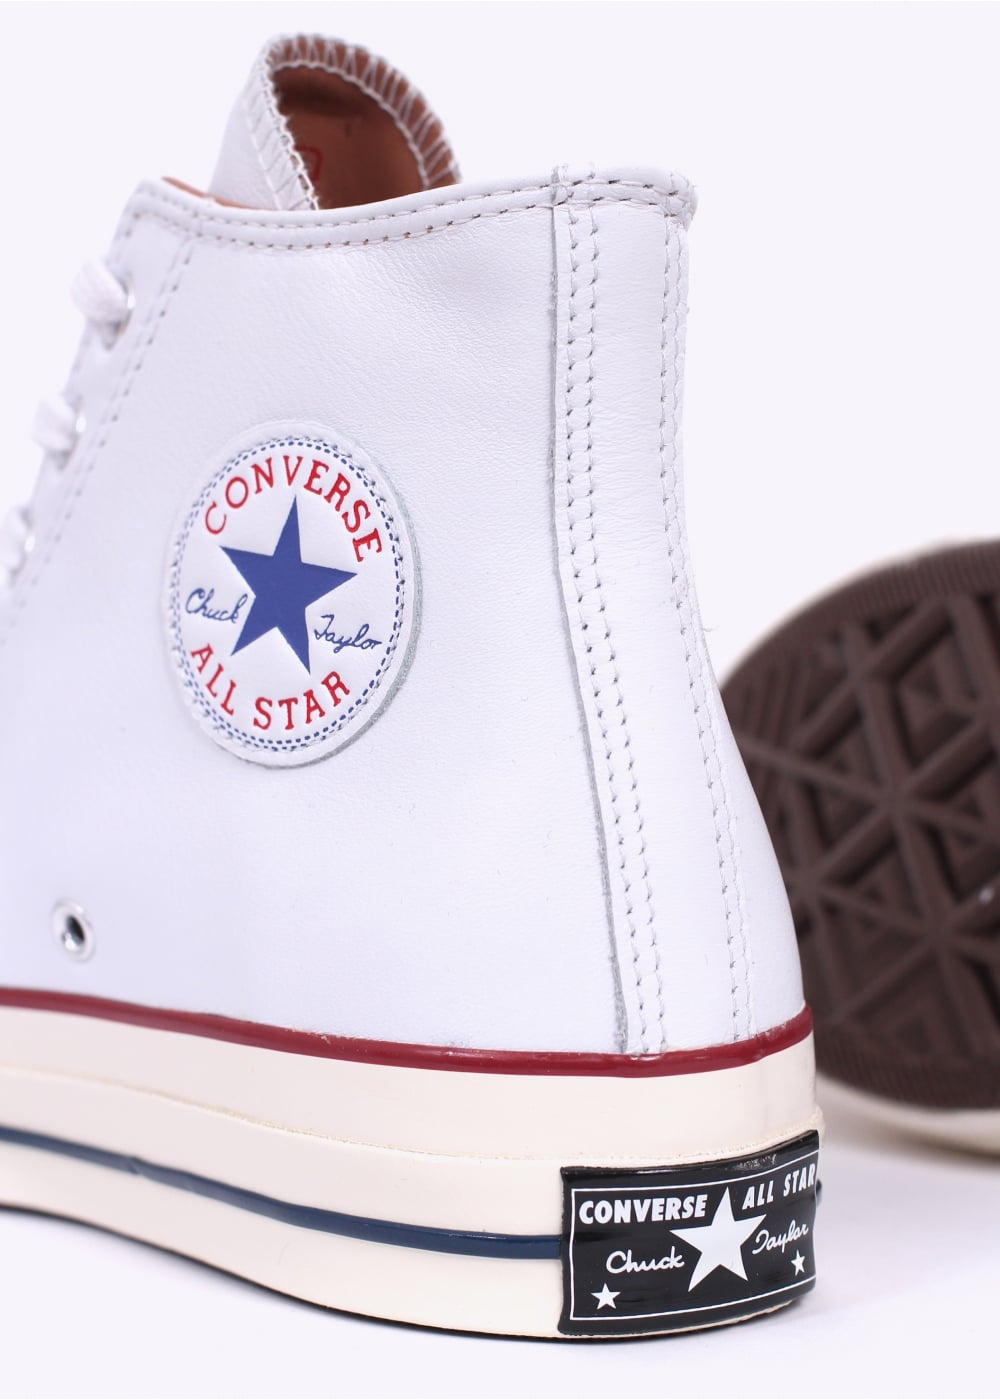 dba4088d70df Converse Chuck Taylor All Star Leather - White   Egret